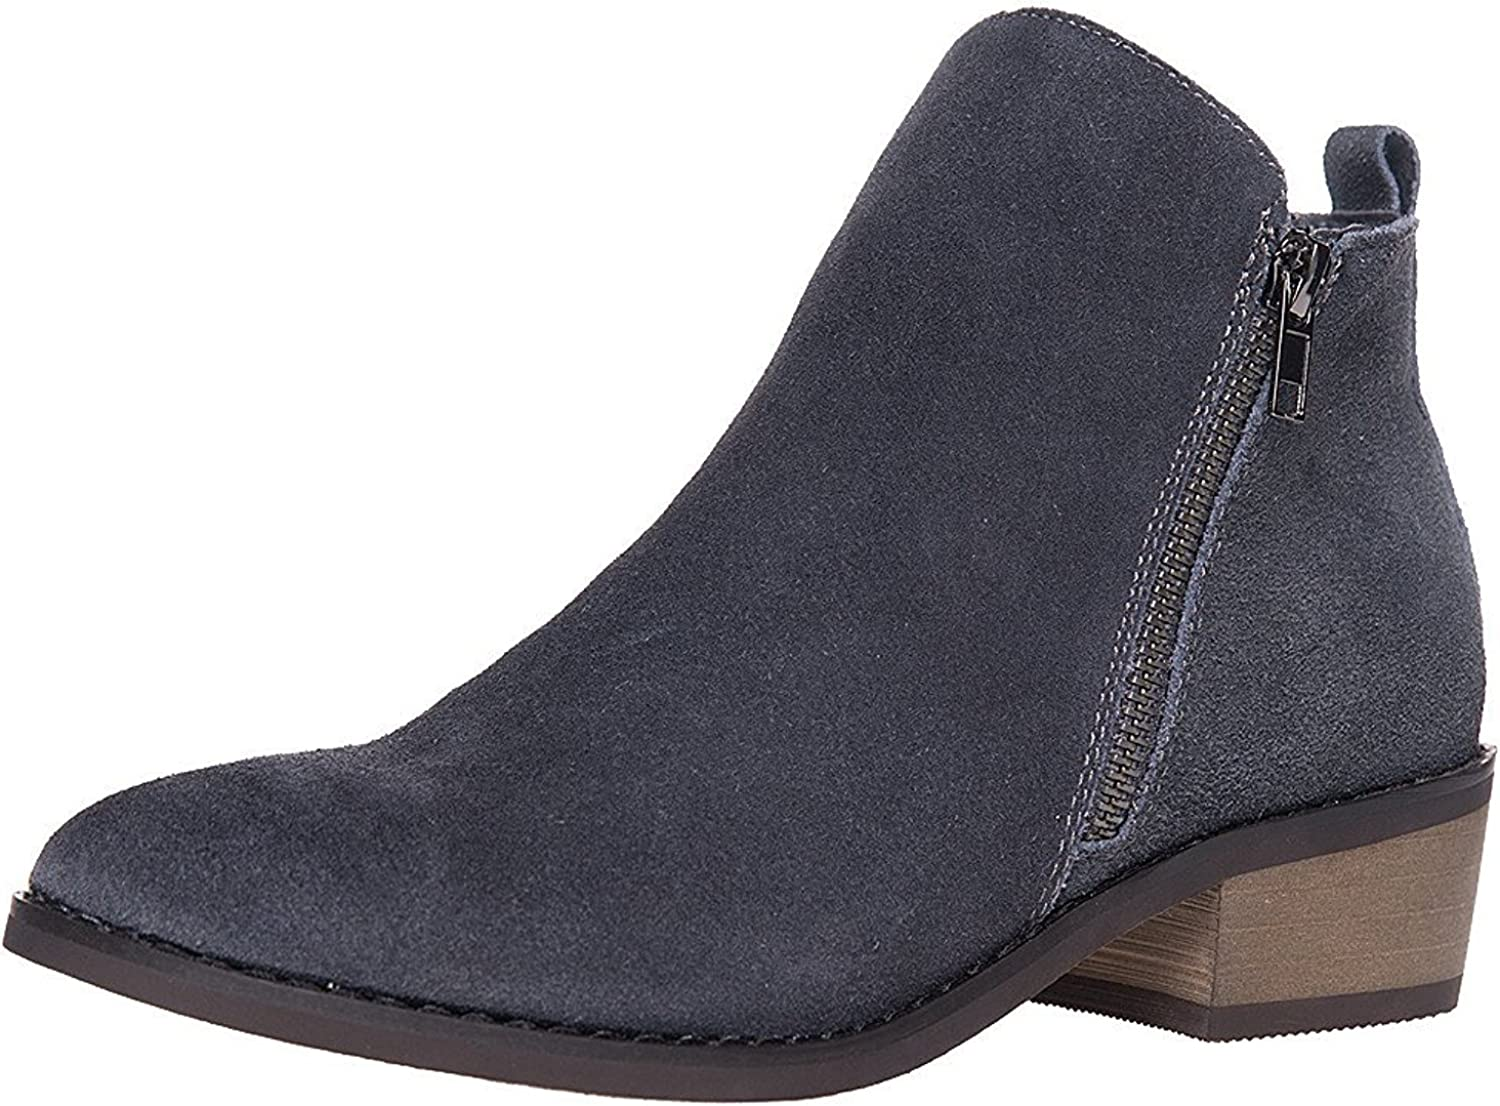 SheSole Ladies Womens Suede Ankle Boots